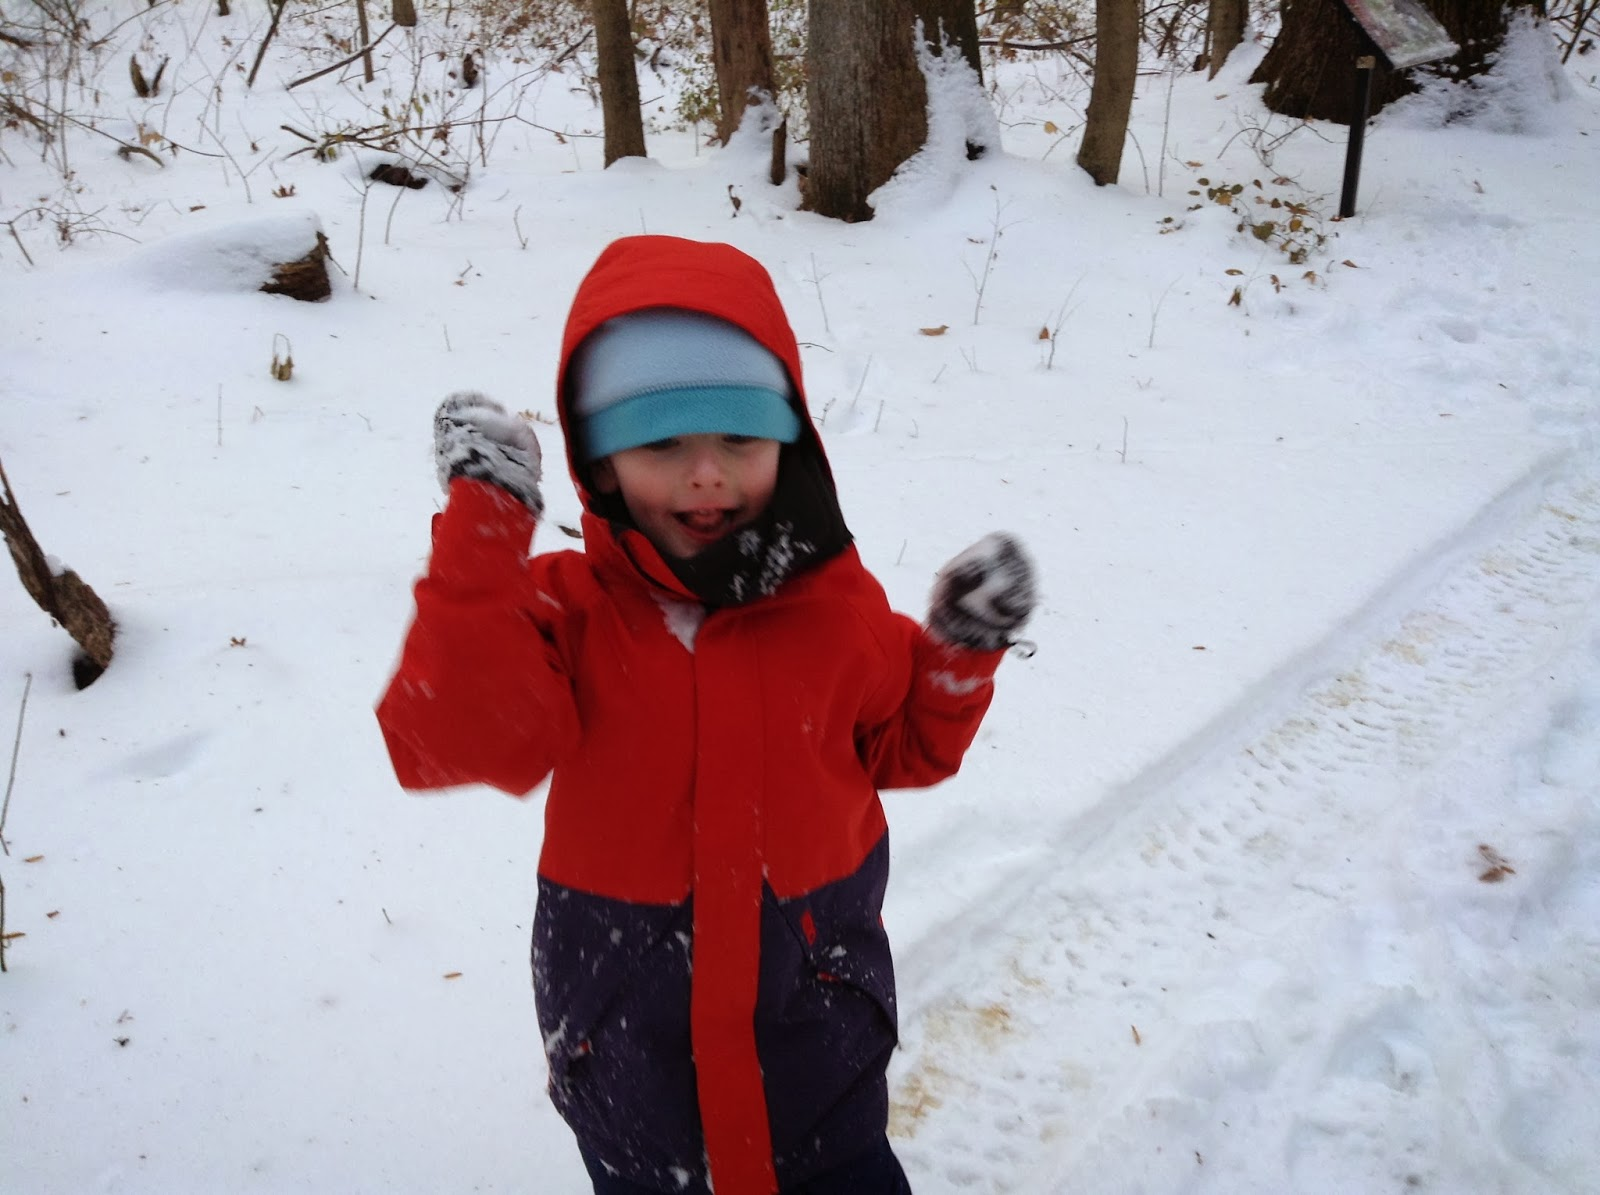 Safety tips for playing outdoors in the winter.